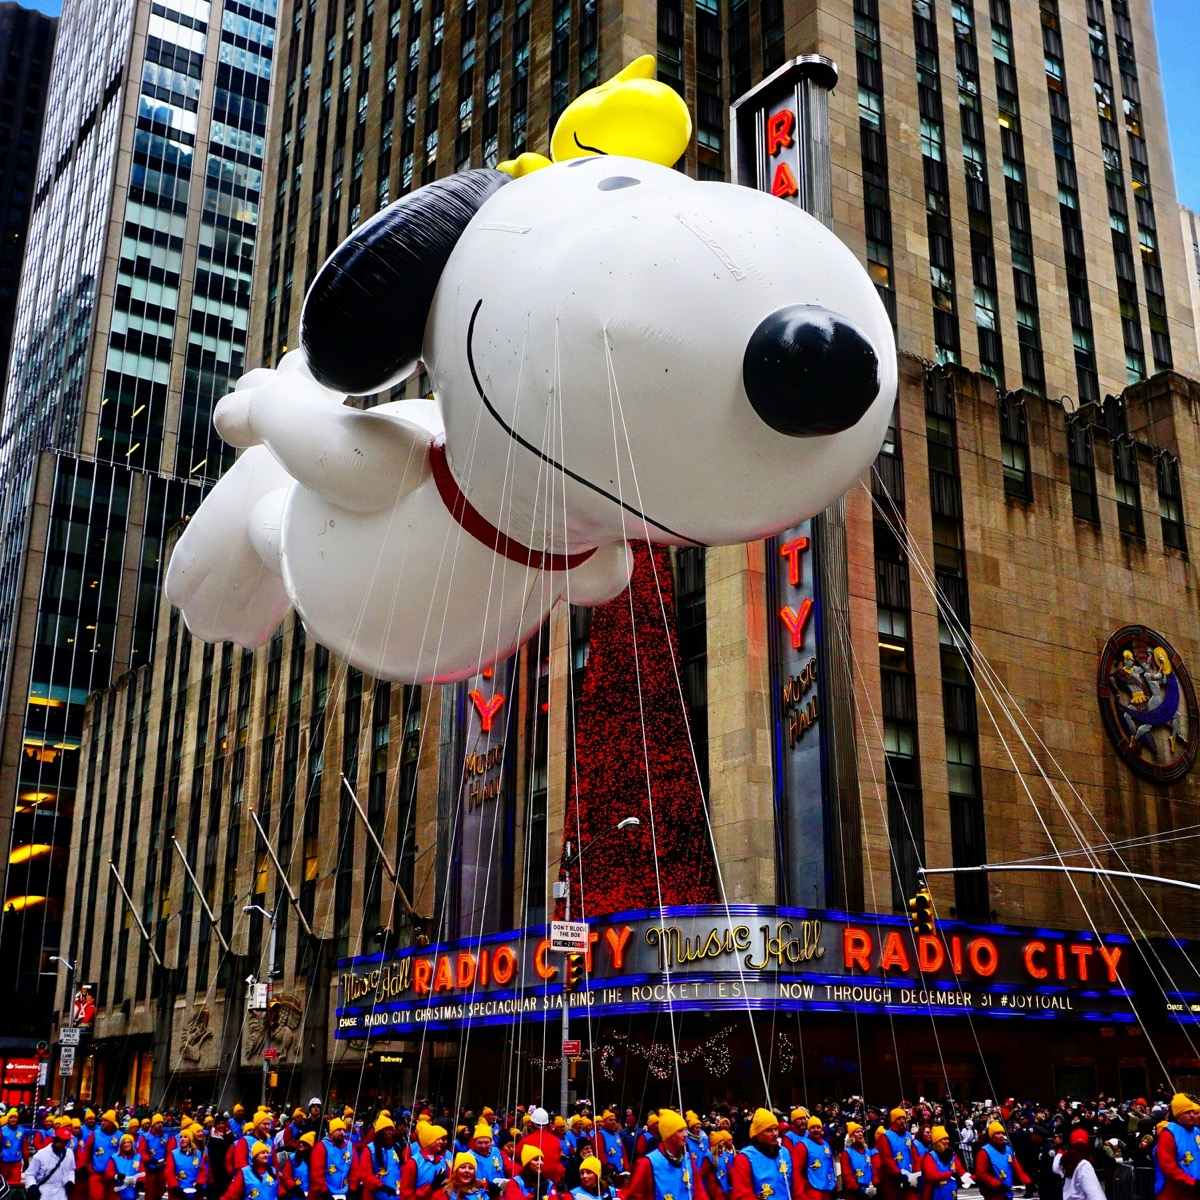 Snoopy float at the Macy's Thanksgiving Day Parade